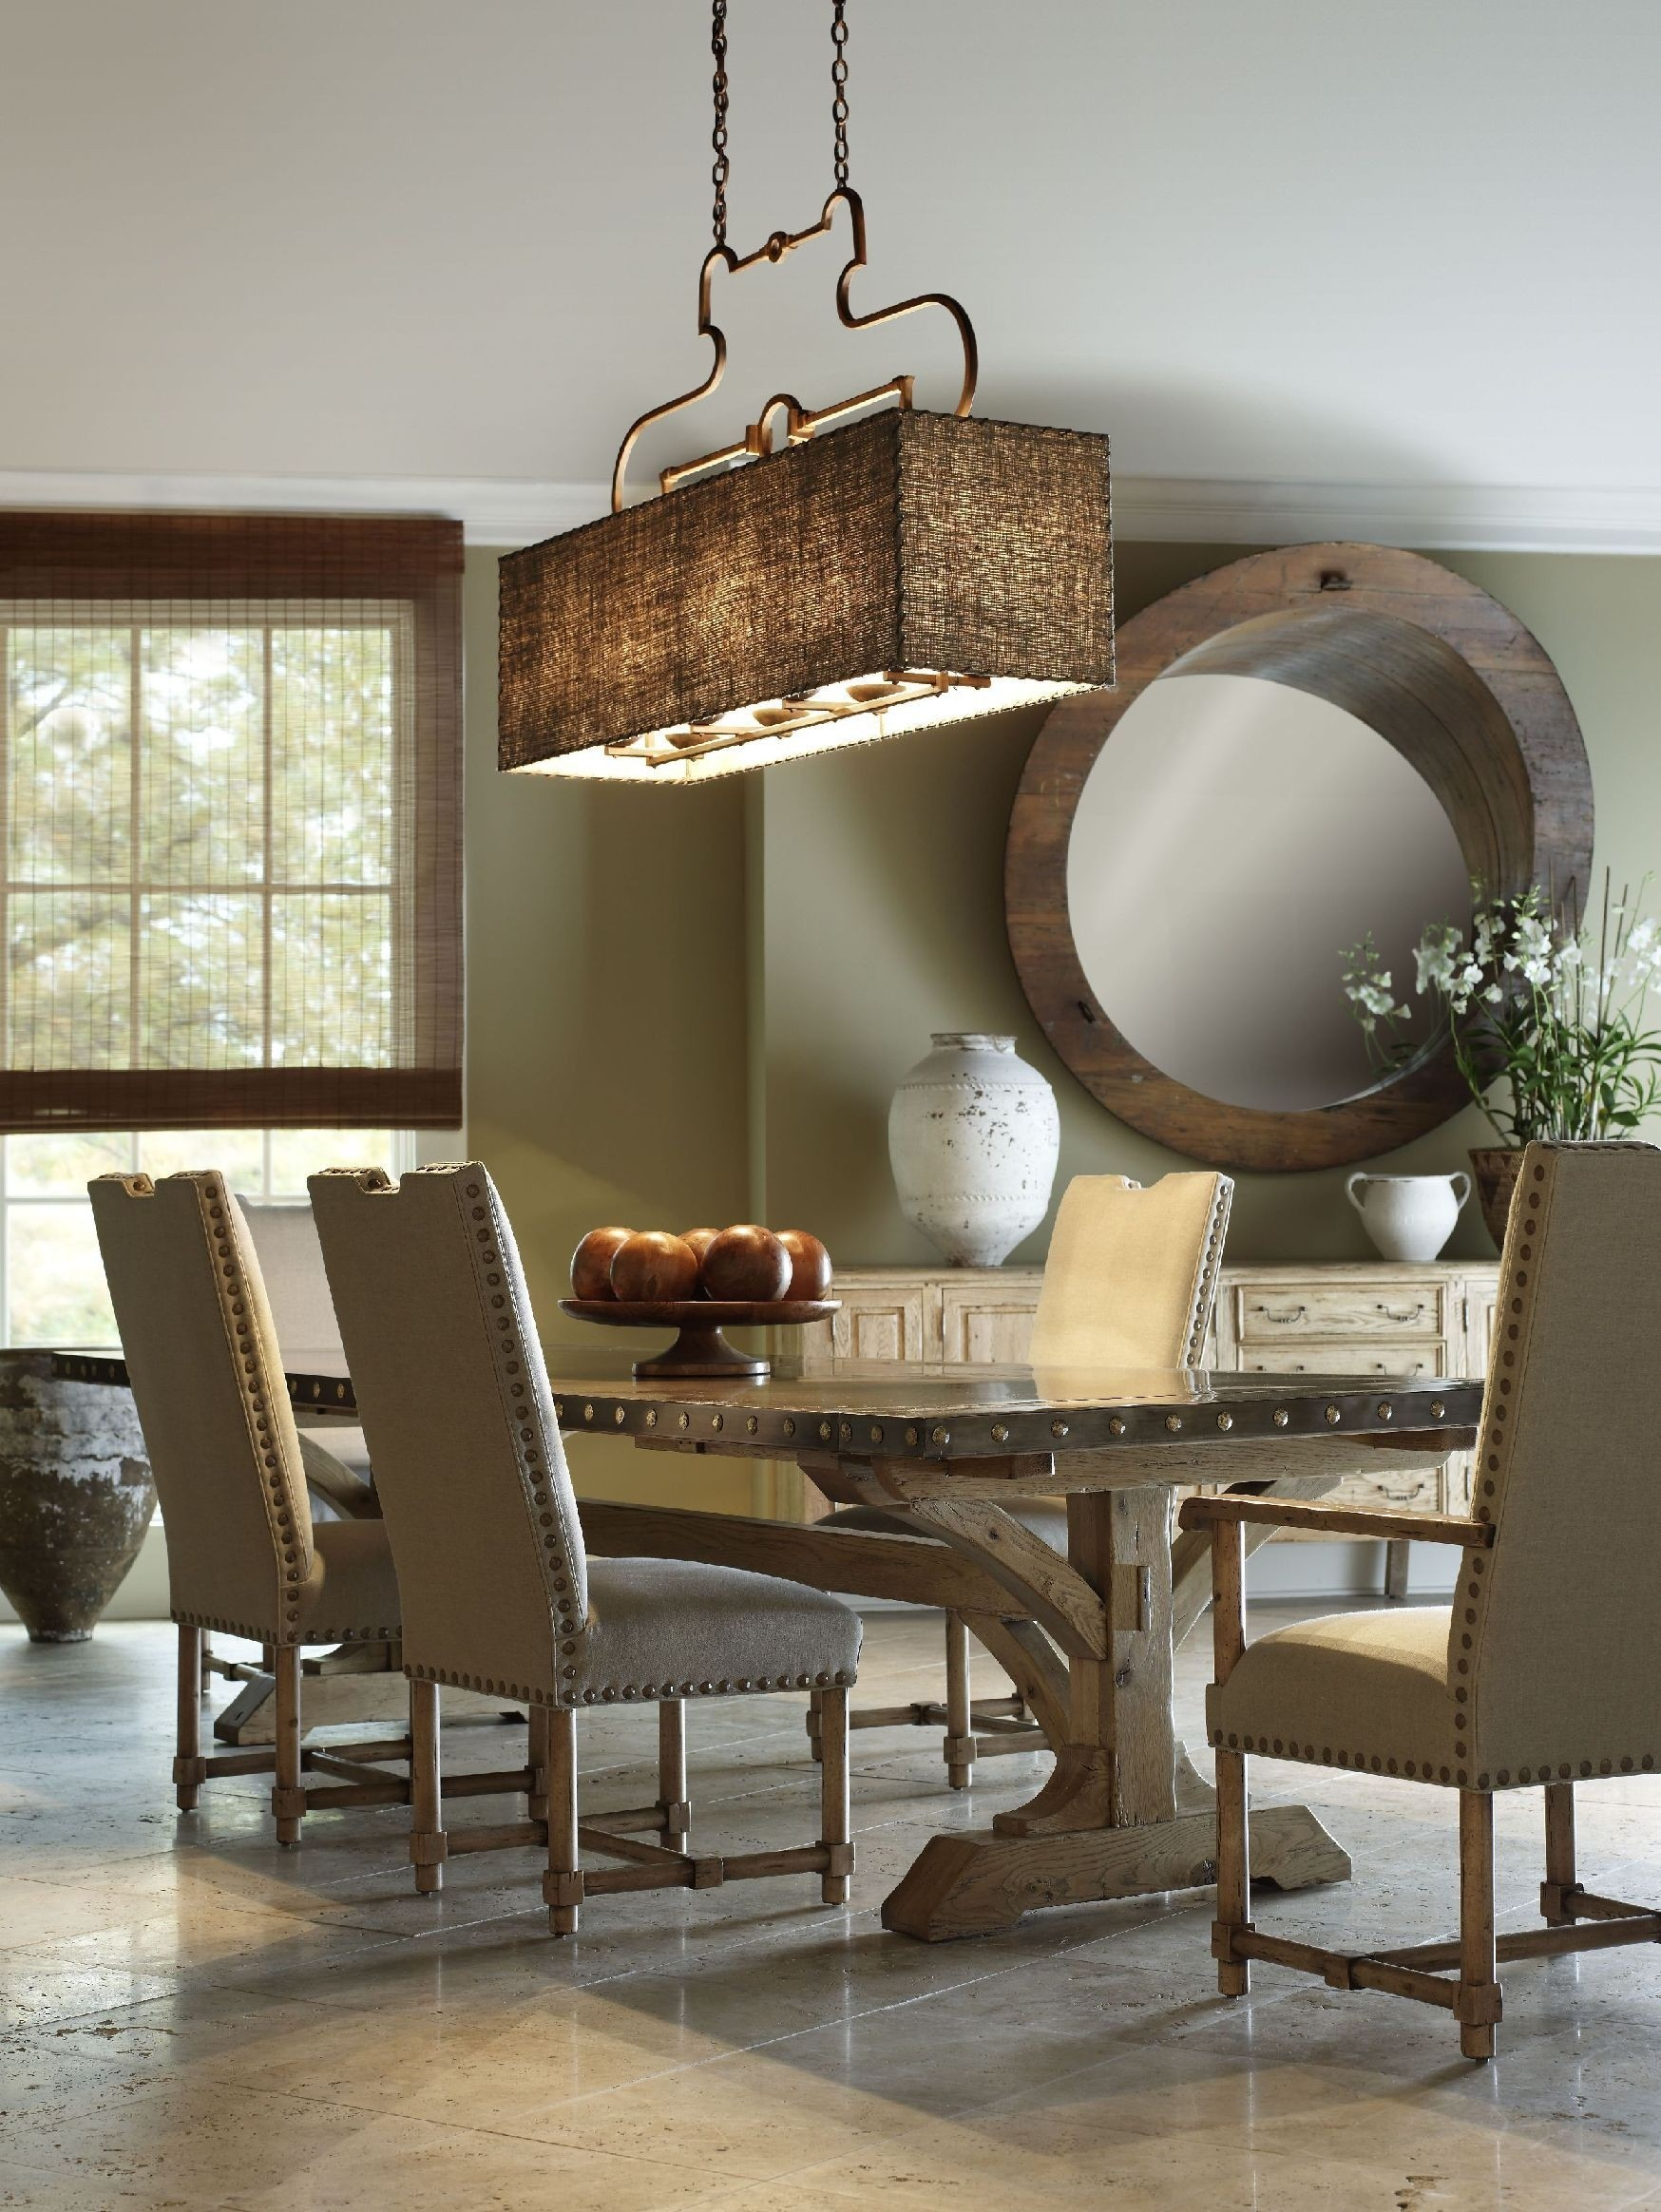 Rectangular Drum Shade Chandelier Awesome Large Circle Mirror In